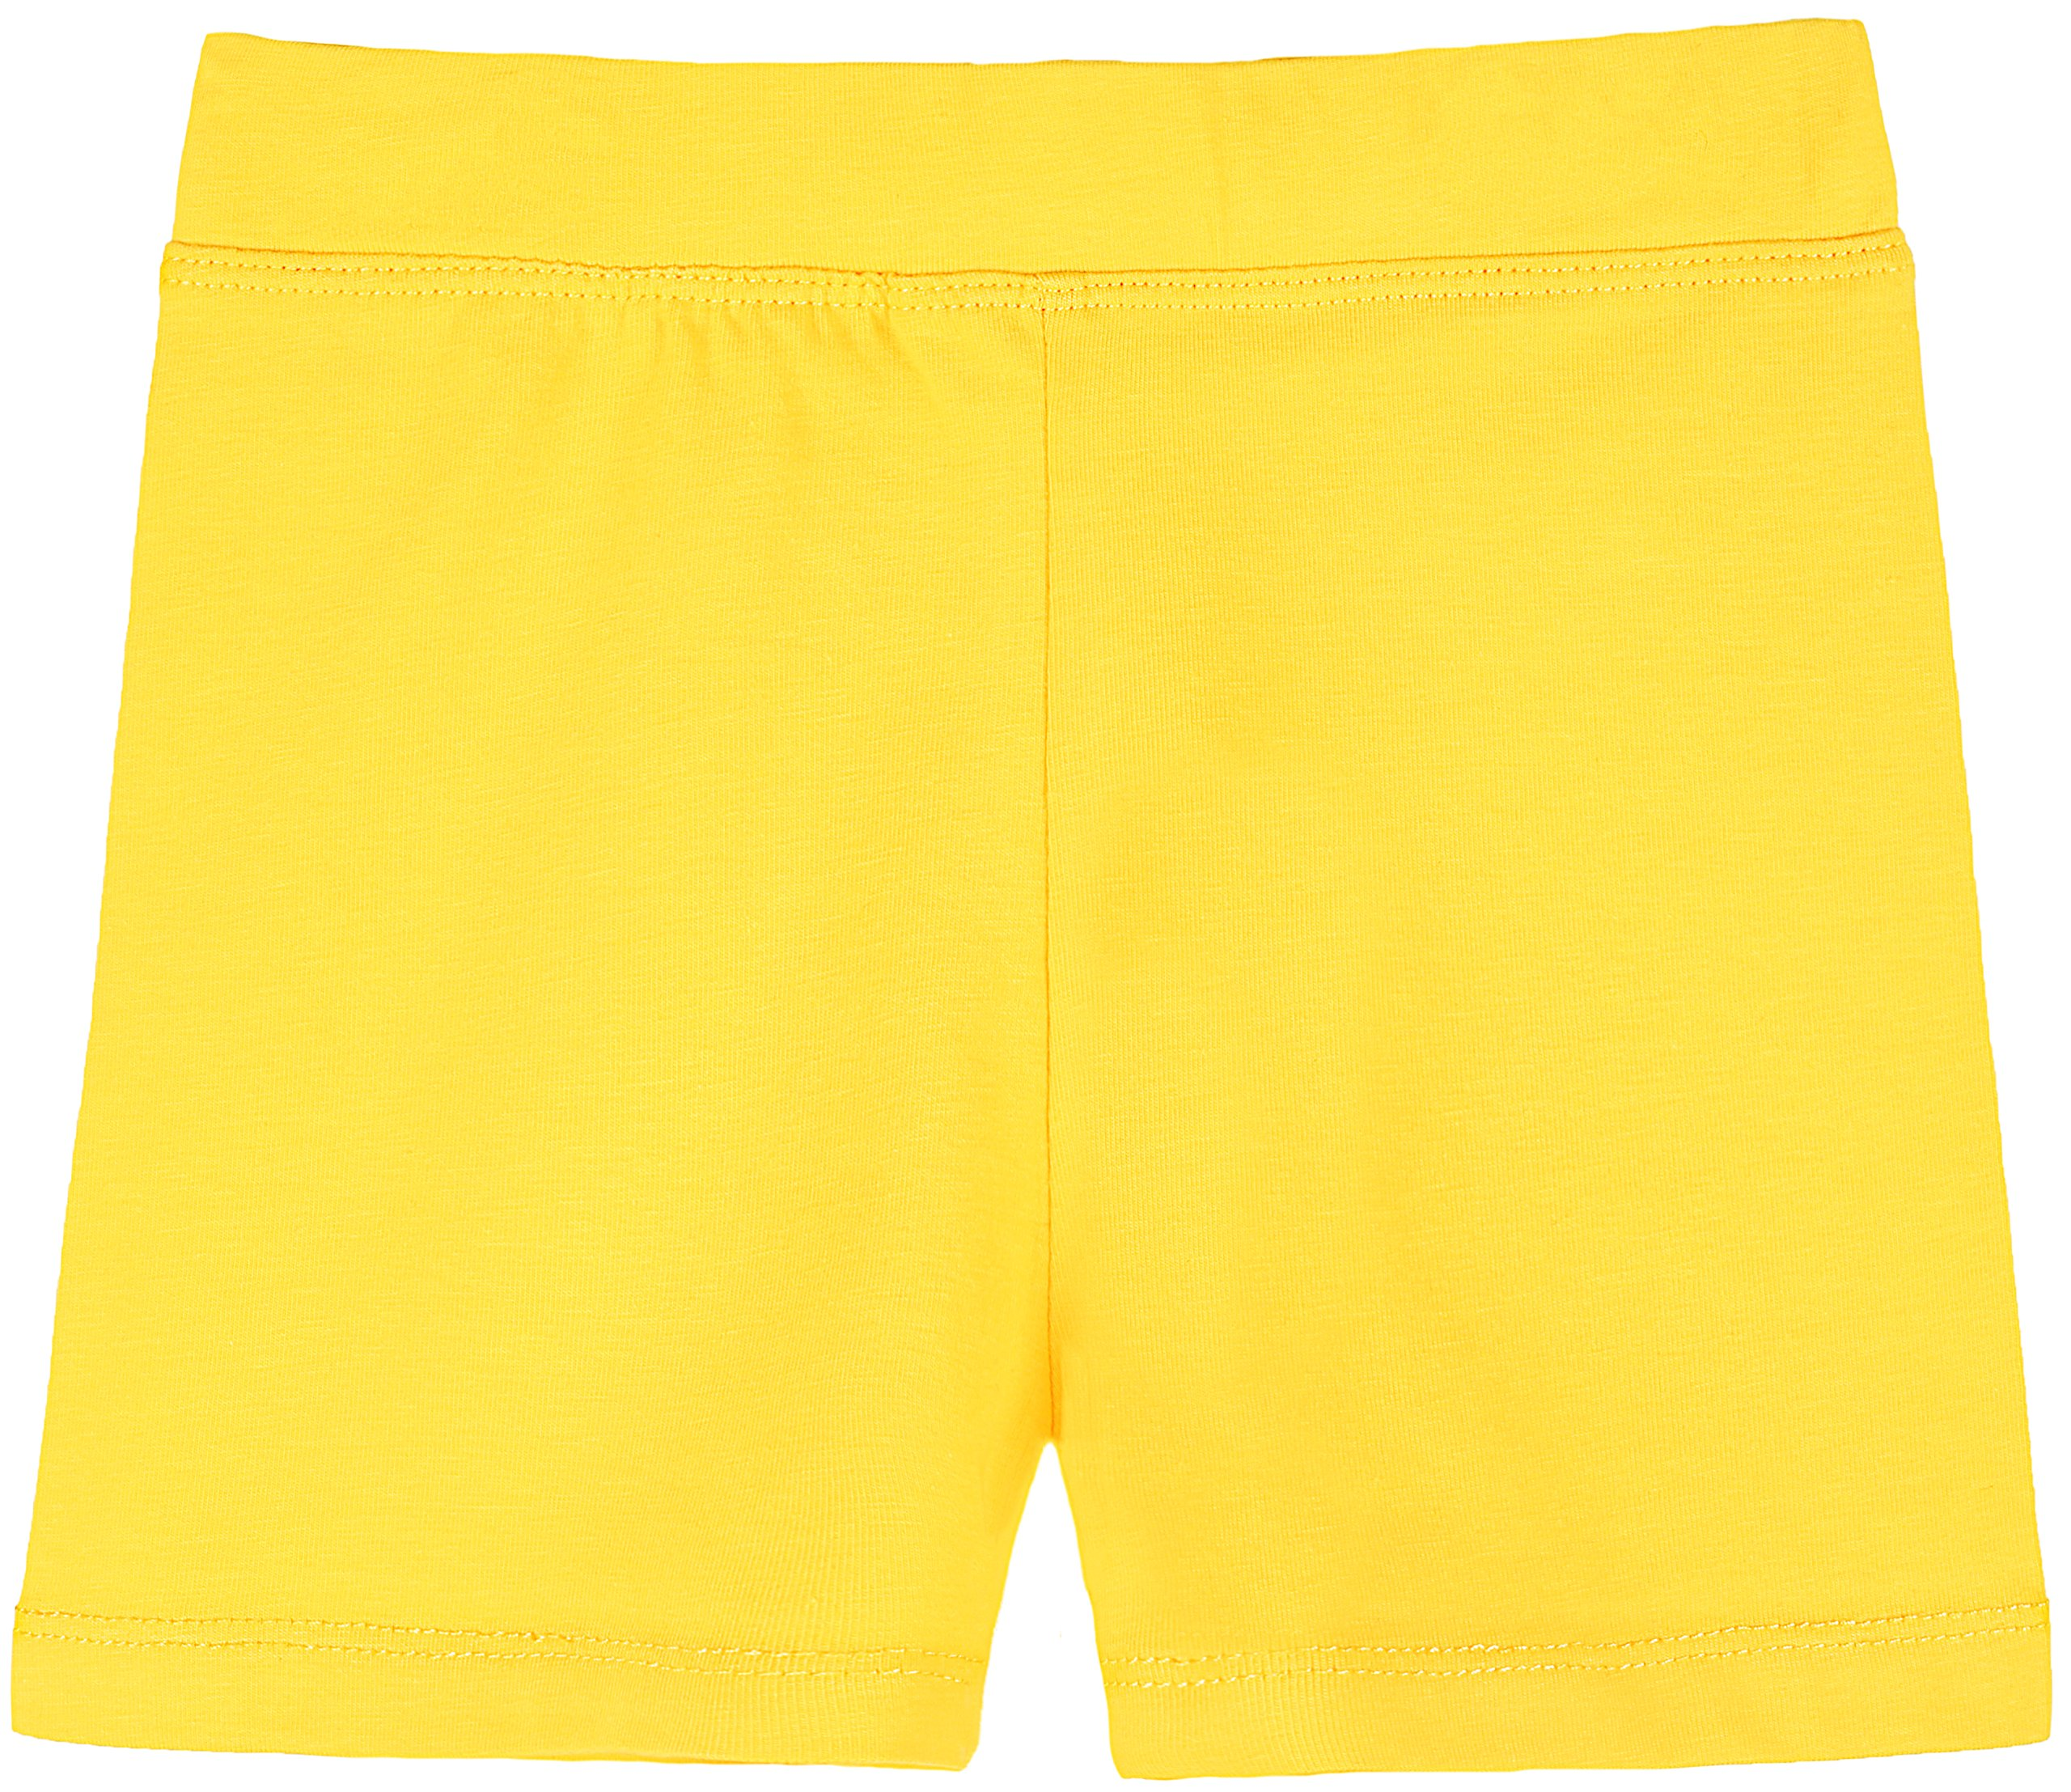 Lovetti Girls' Basic Solid Soft Dance Short for Gymnastics Or Under Skirts 4T Yellow